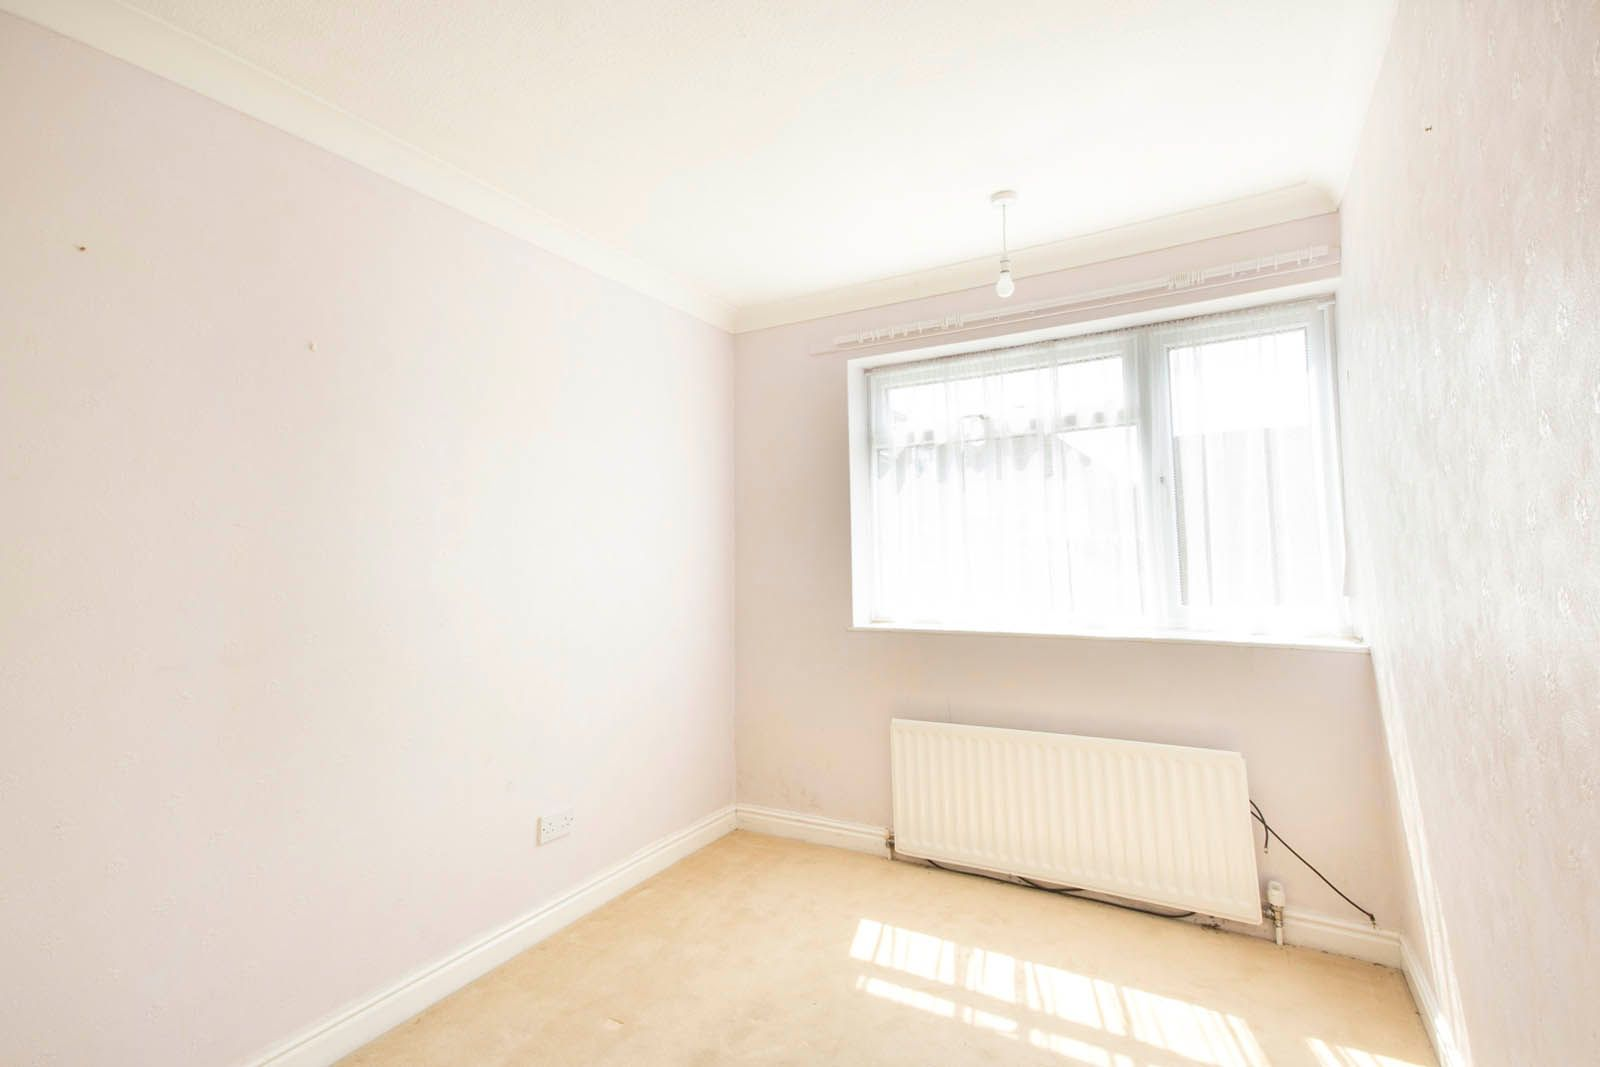 2 bed Apartment for sale in Rustington - Bedroom (Property Image 5)